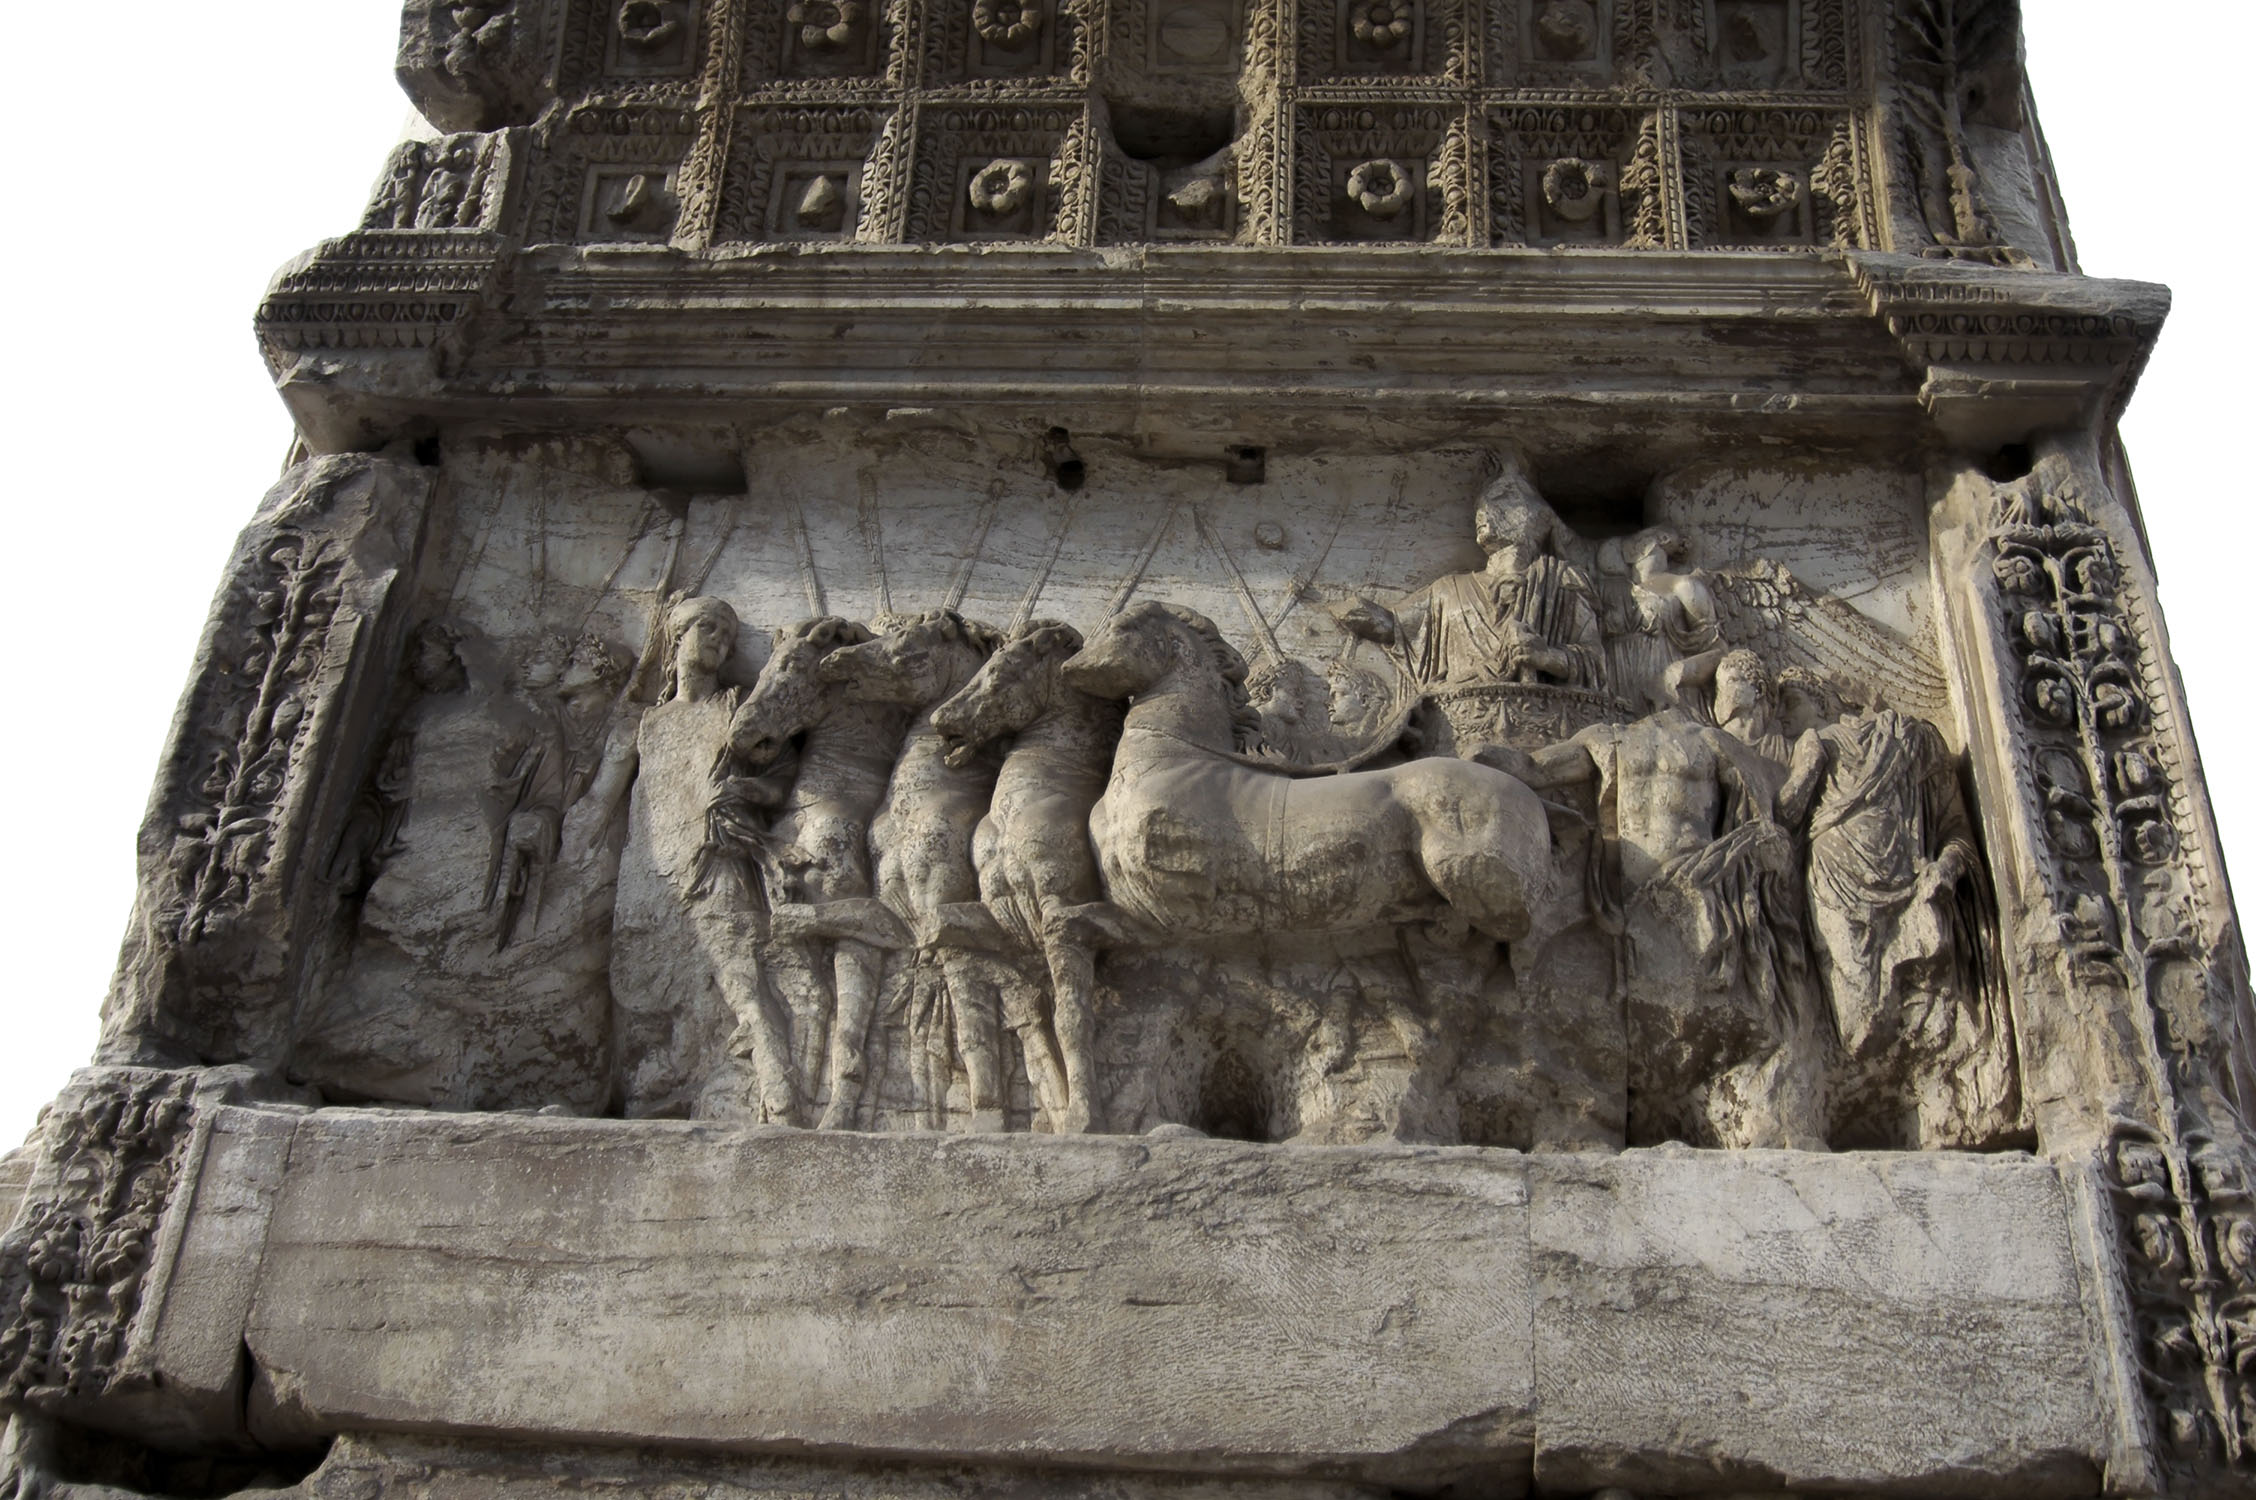 Triumphal procession of Titus. Relief on the northern side of the arch of Titus. 81—96 CE. Rome, Roman Forum, Arch of Titus